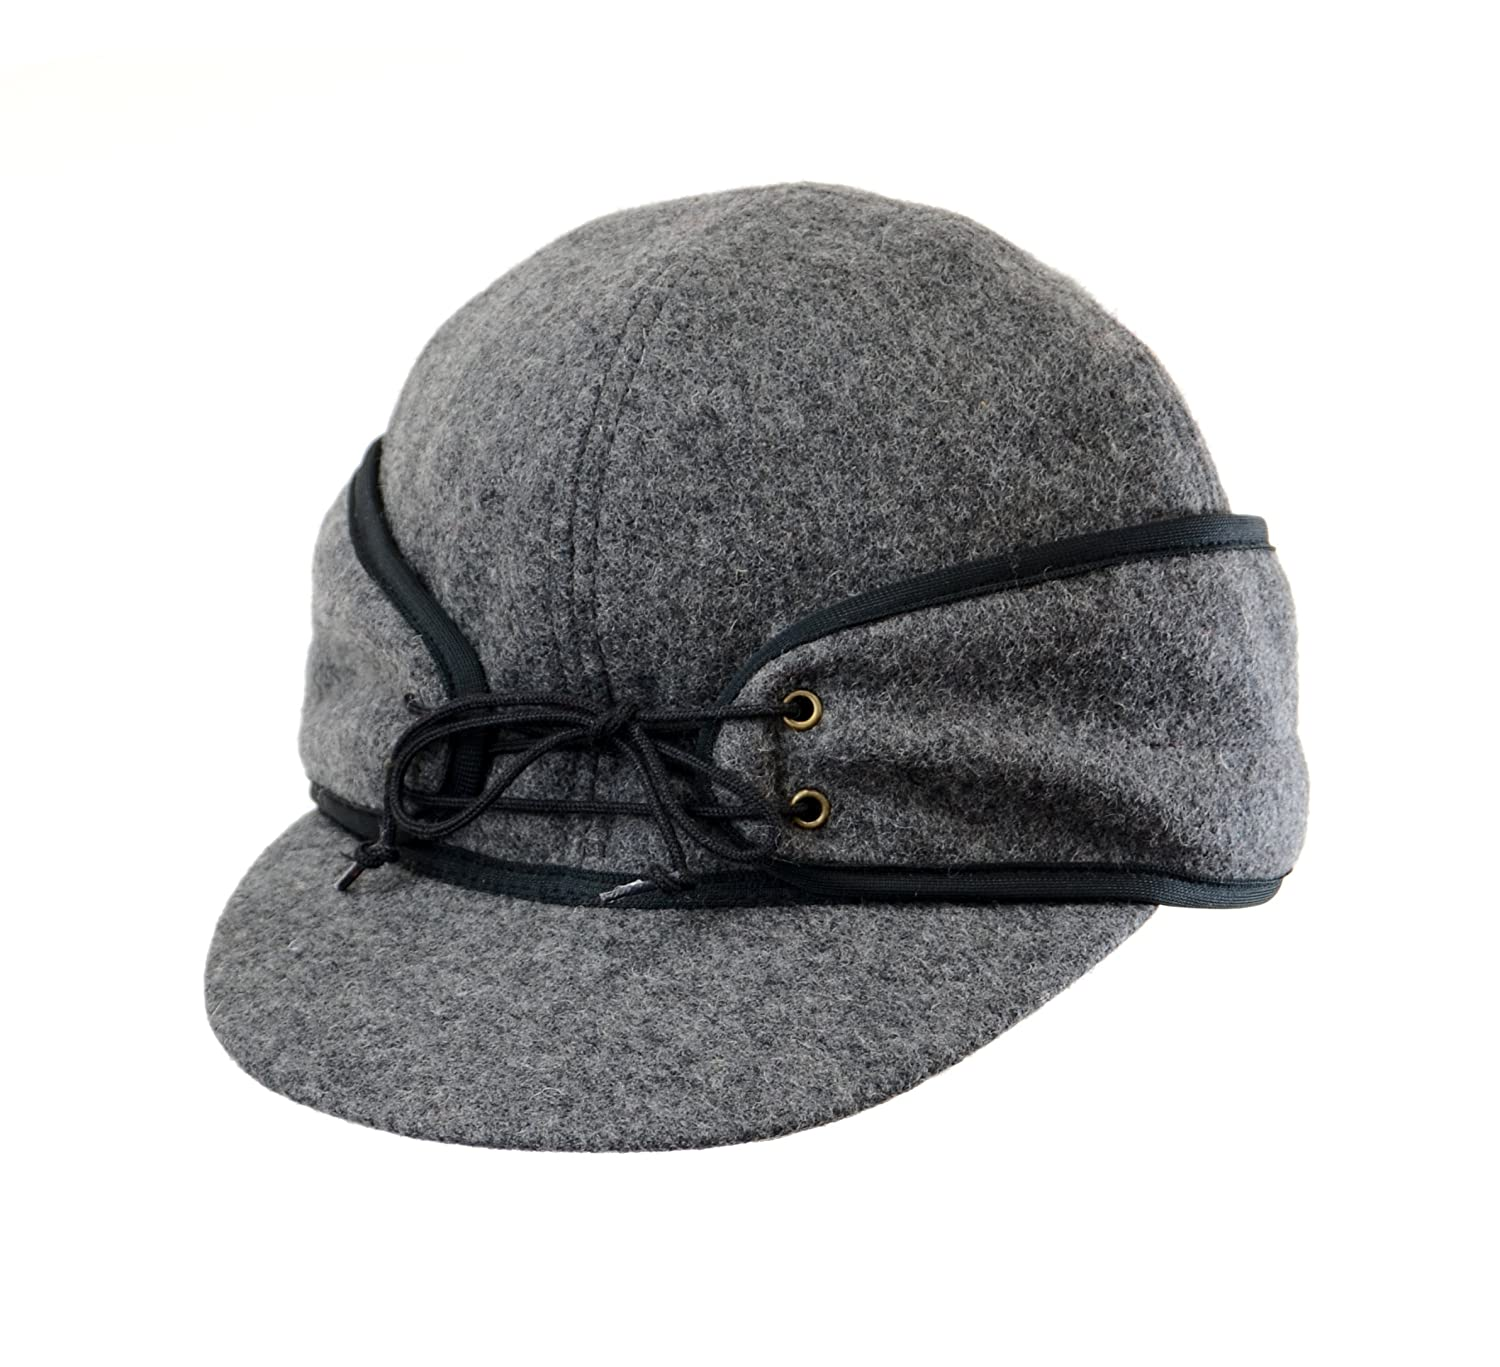 c3219134e5b Amazon.com  Crown Cap Wool Blend Solid Color Railroad Cap  Sports   Outdoors